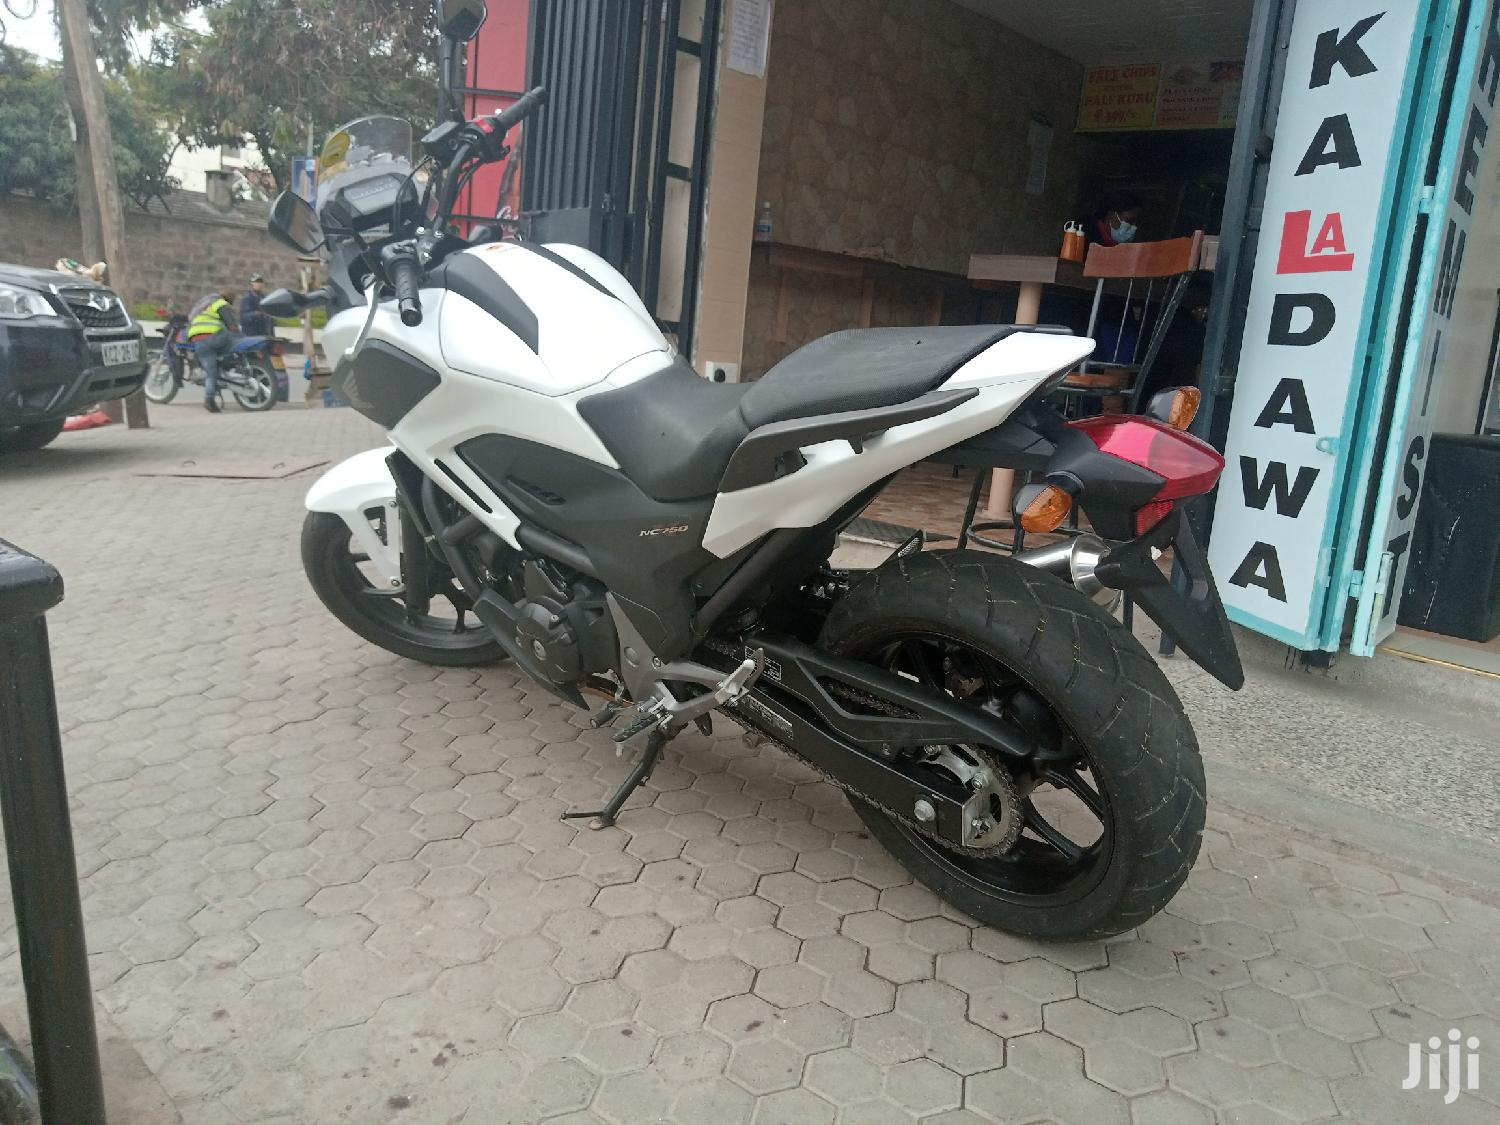 Honda 2014 White | Motorcycles & Scooters for sale in South C, Nairobi, Kenya